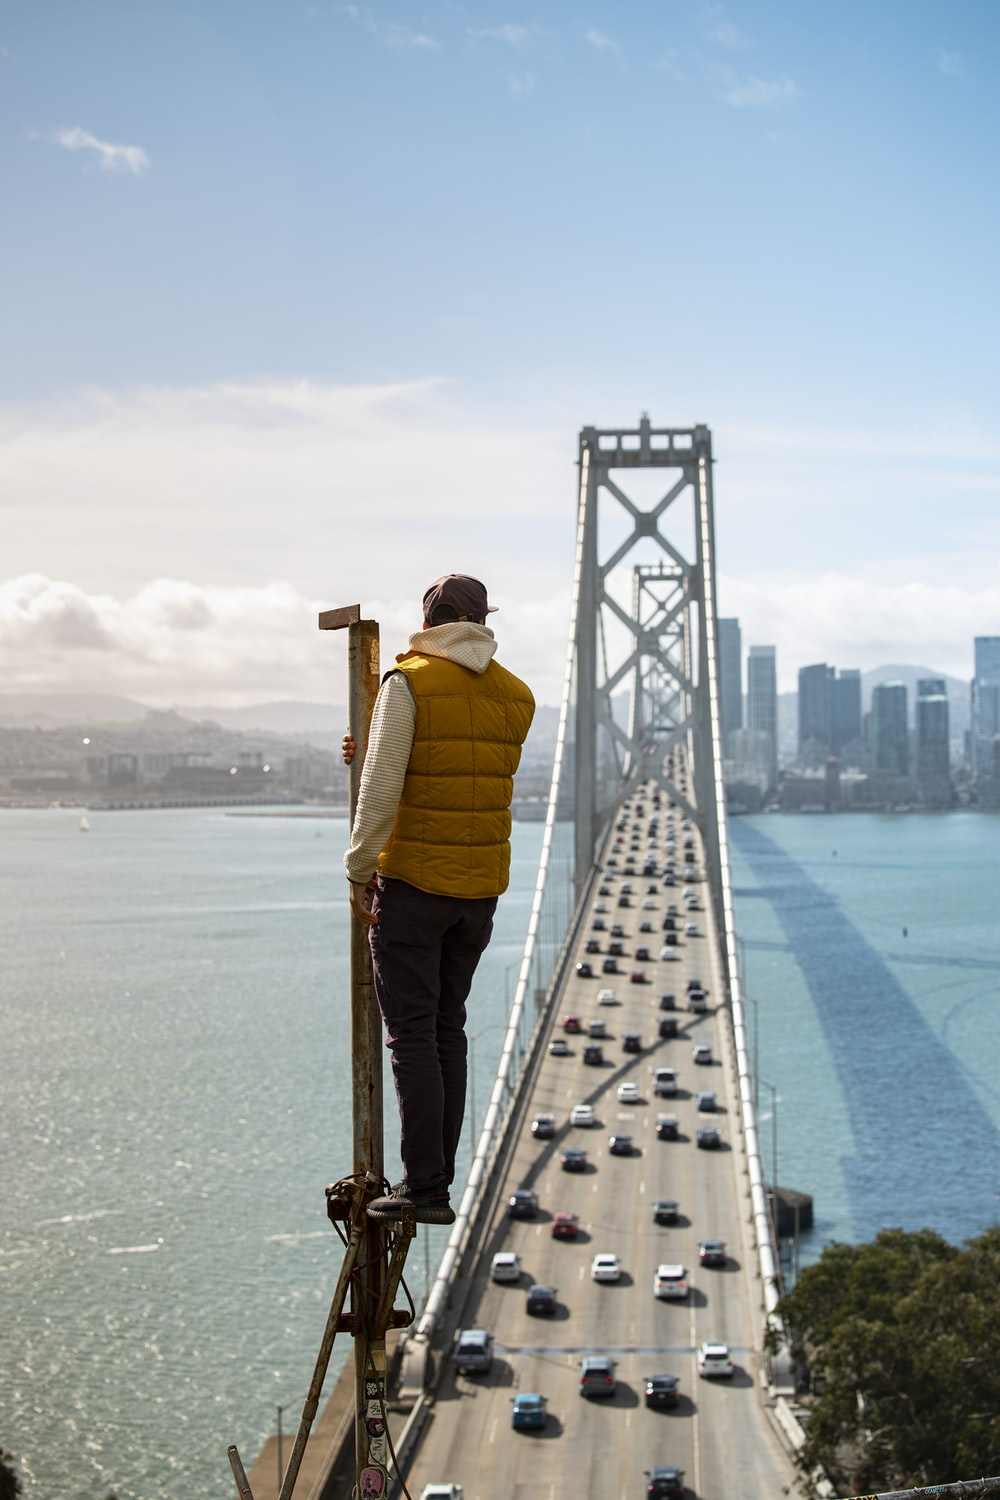 man in yellow jacket and brown pants standing on bridge during daytime